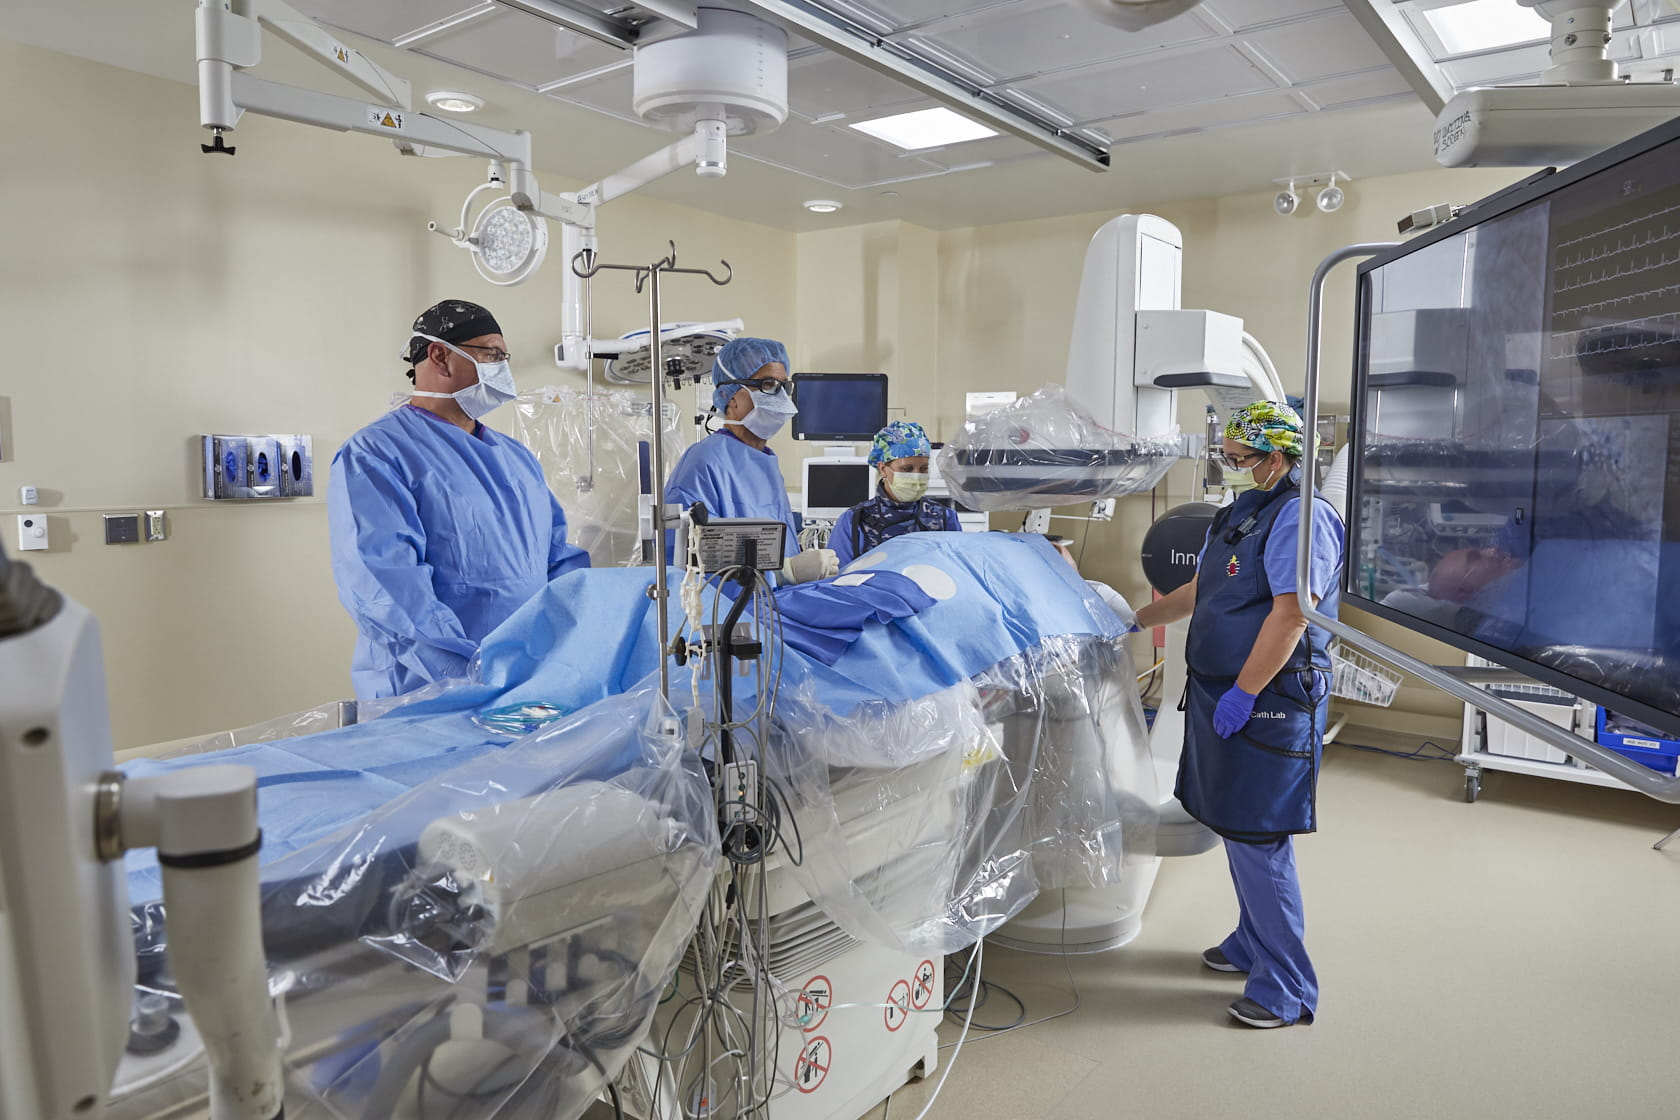 Image of a catheterization lab with 4 medical professionals providing treatment.